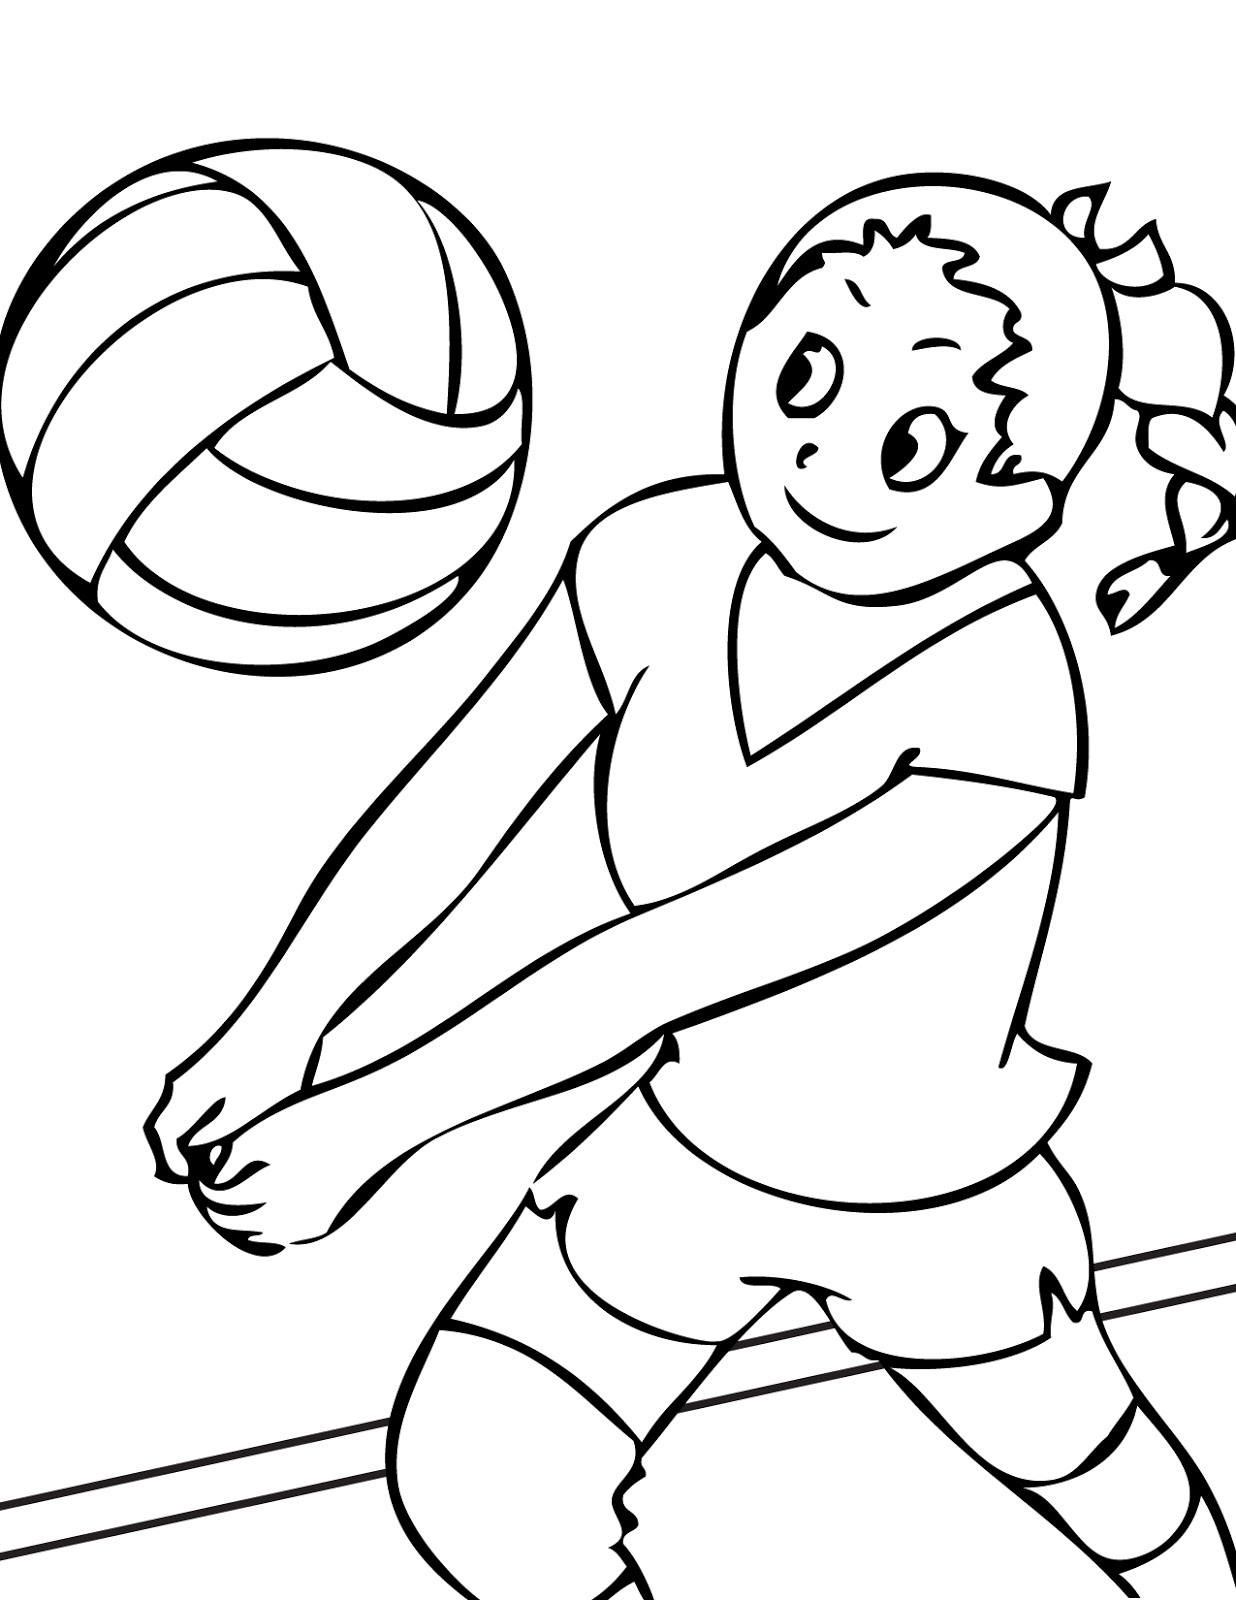 sports pictures to color free printable sports coloring pages for kids sports pictures color to